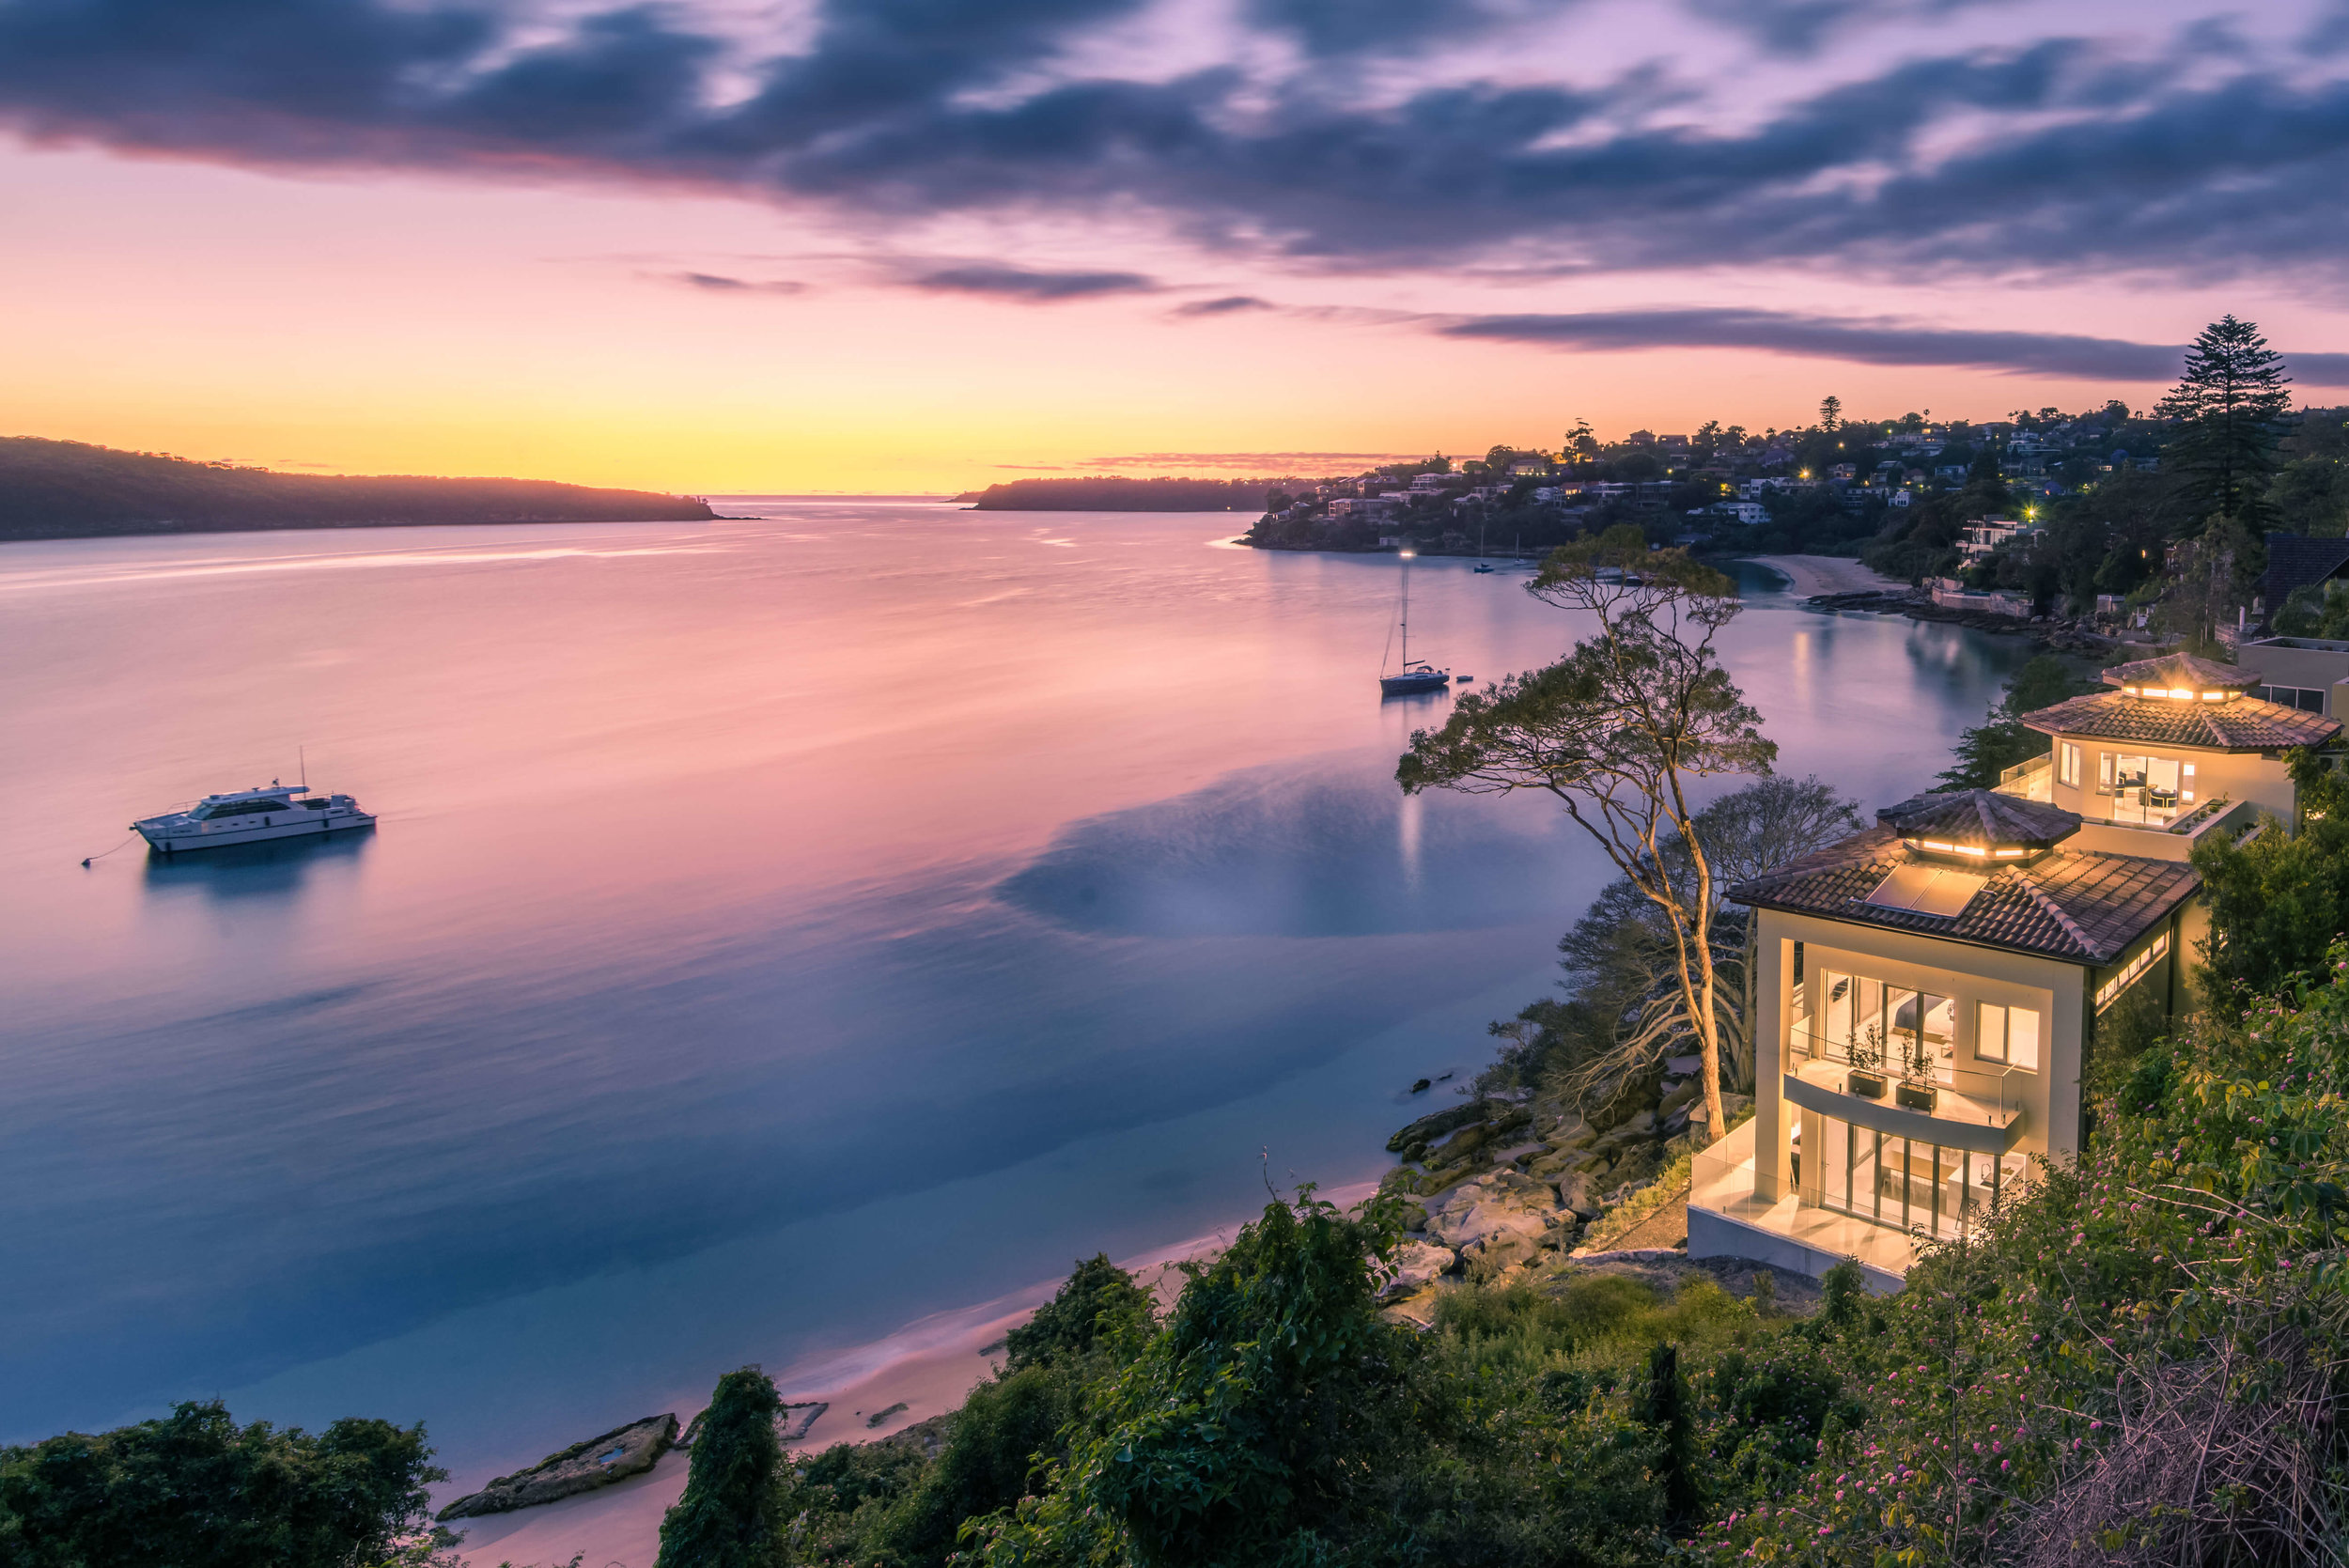 Australia's best residential property for 2019 is 'Villa Aqua' in Mosman.